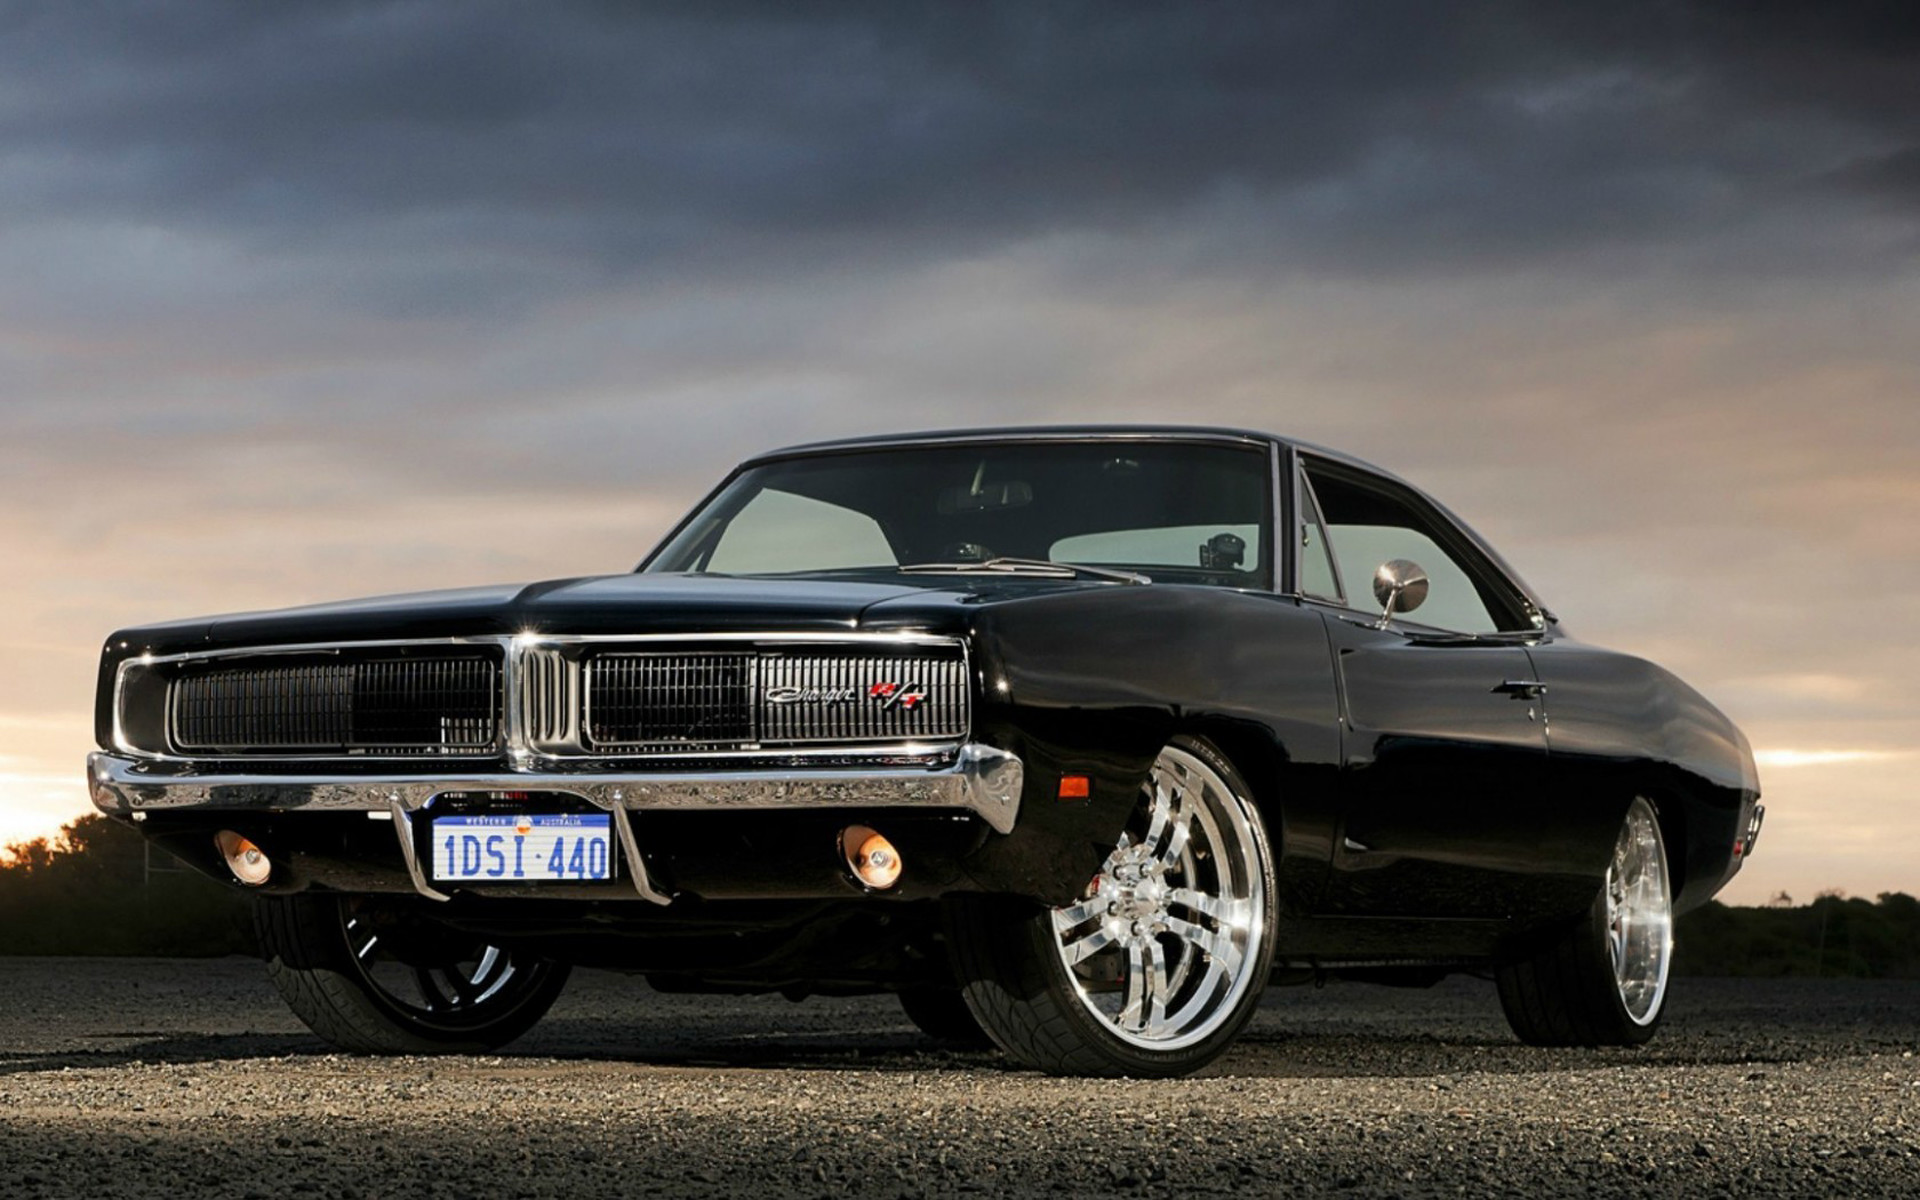 68 Dodge Charger Wallpaper 5 dodge charger srt hd wallpapers backgrounds –  wallpaper abyss